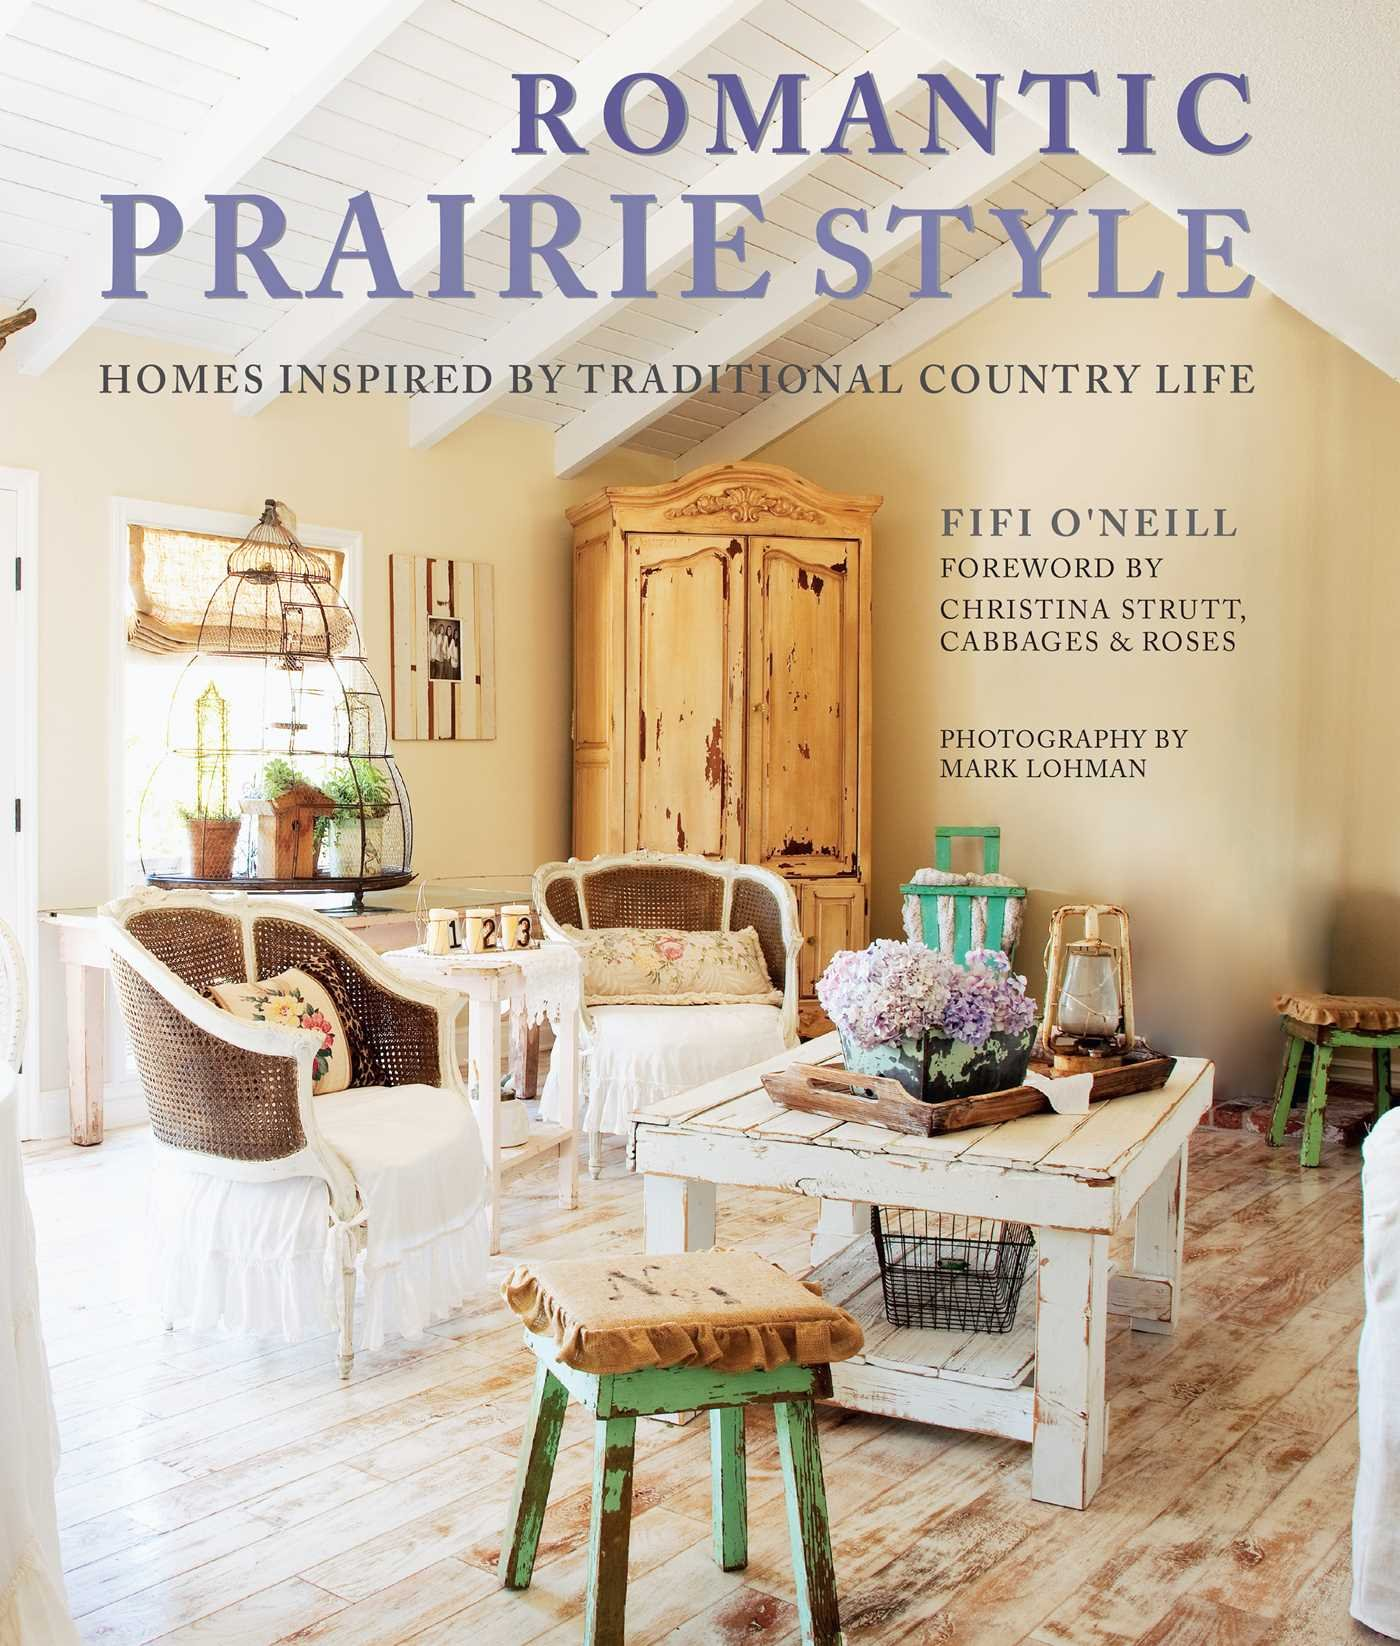 romantic prairie style homes inspired by traditional country life romantic prairie style homes inspired by traditional country life fifi o neill 9781782493280 amazon com books